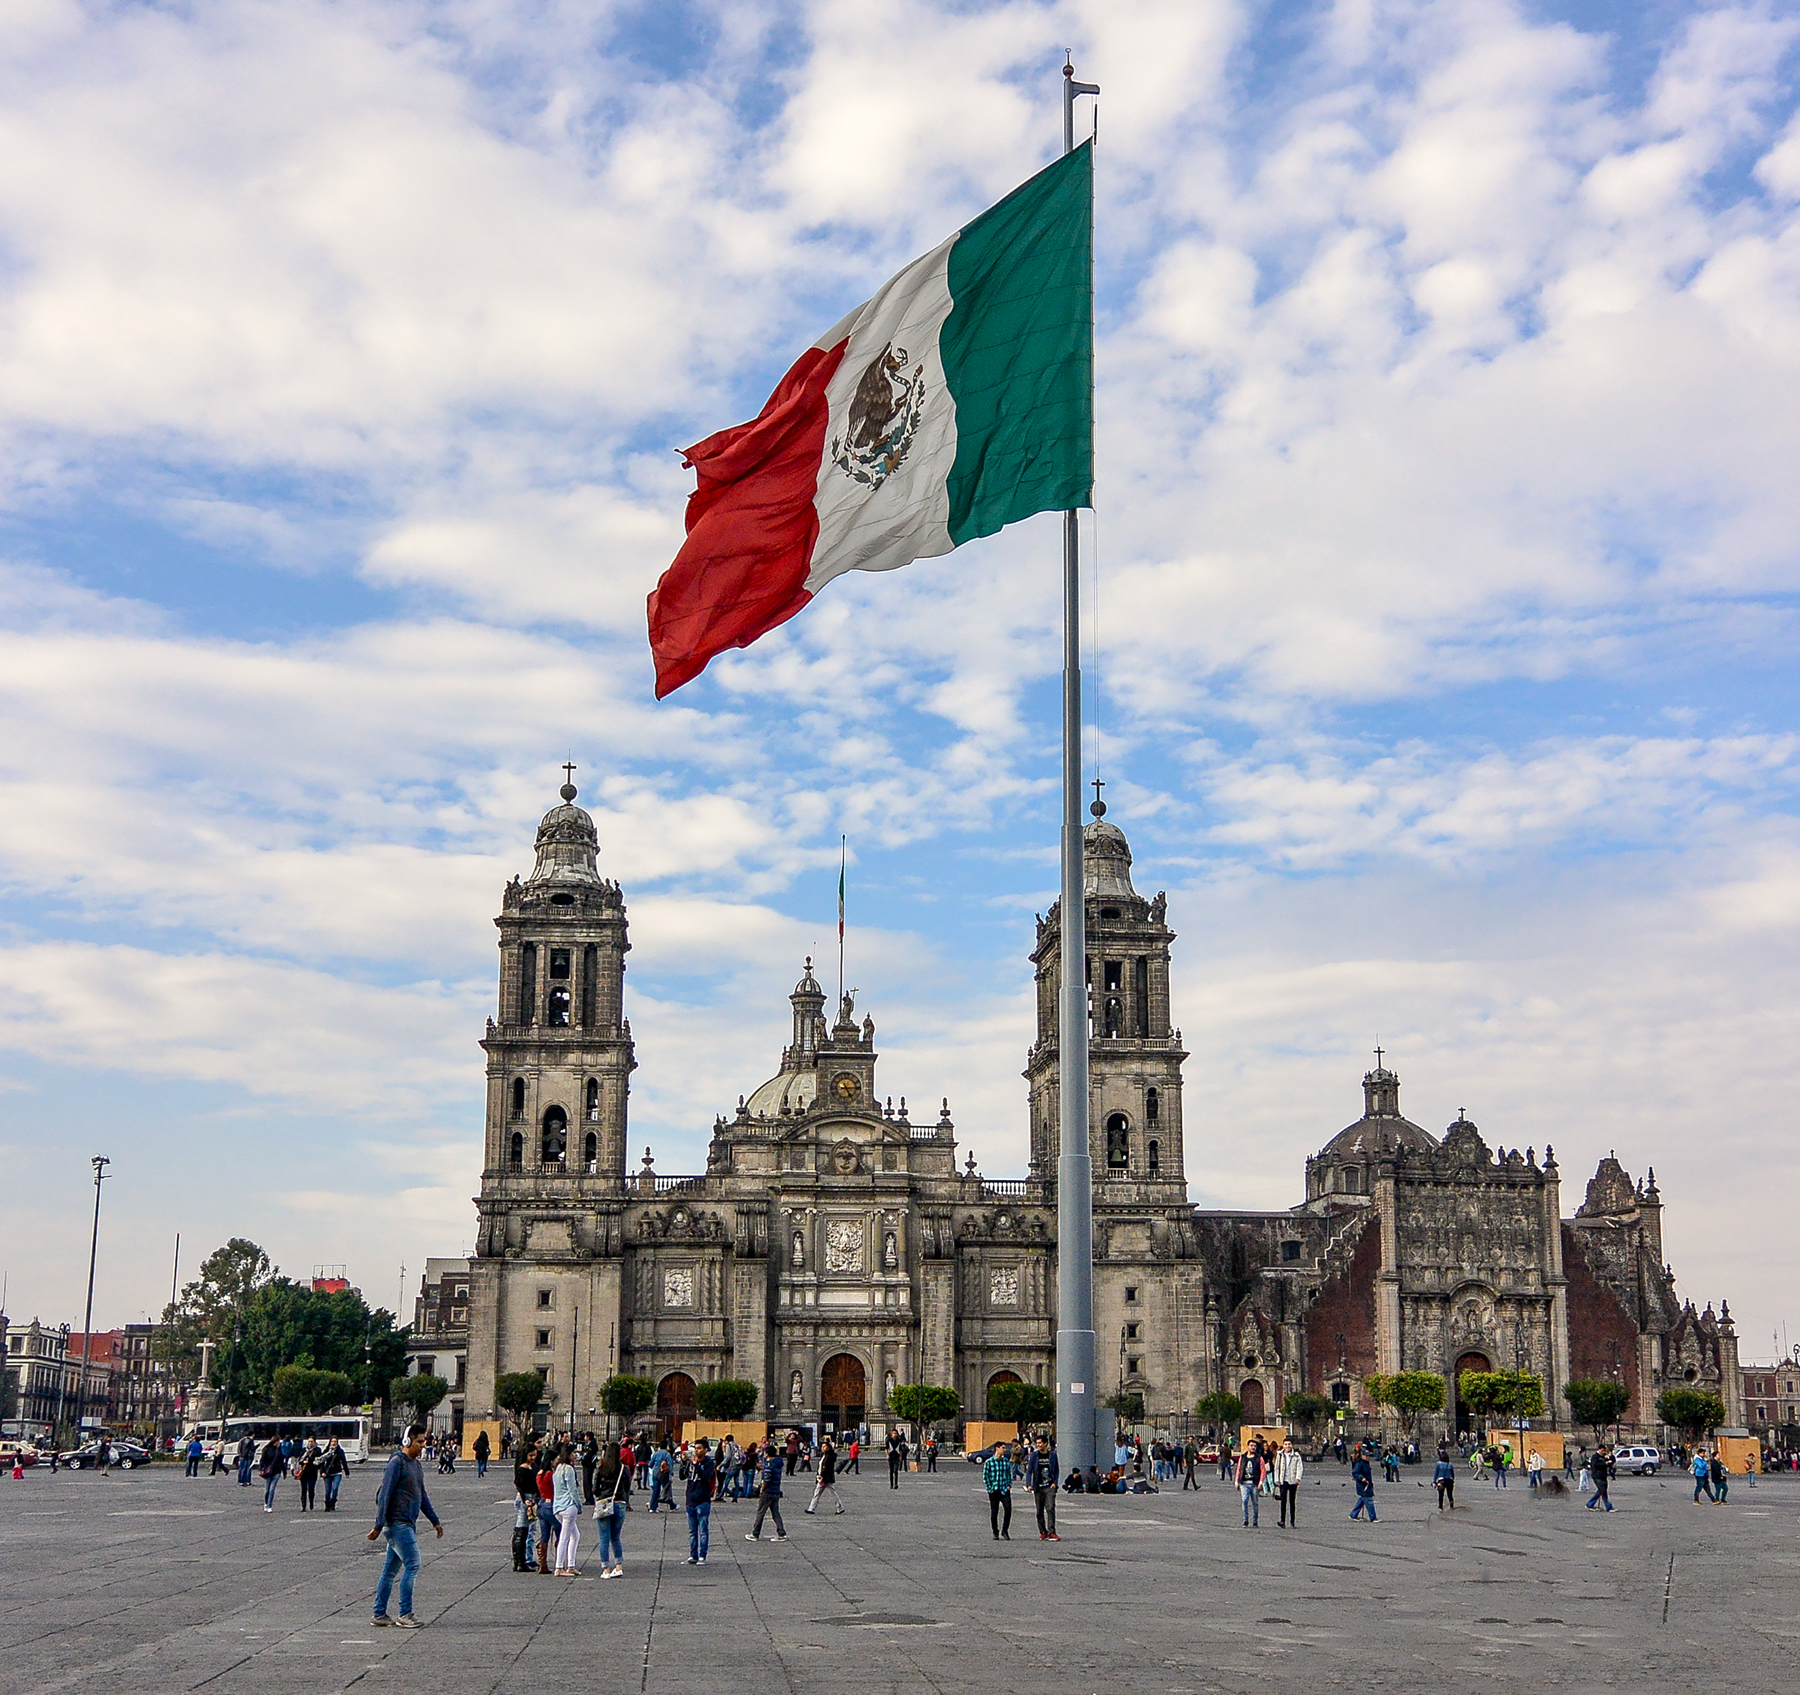 The Best things to do in Mexico City - Zocalo